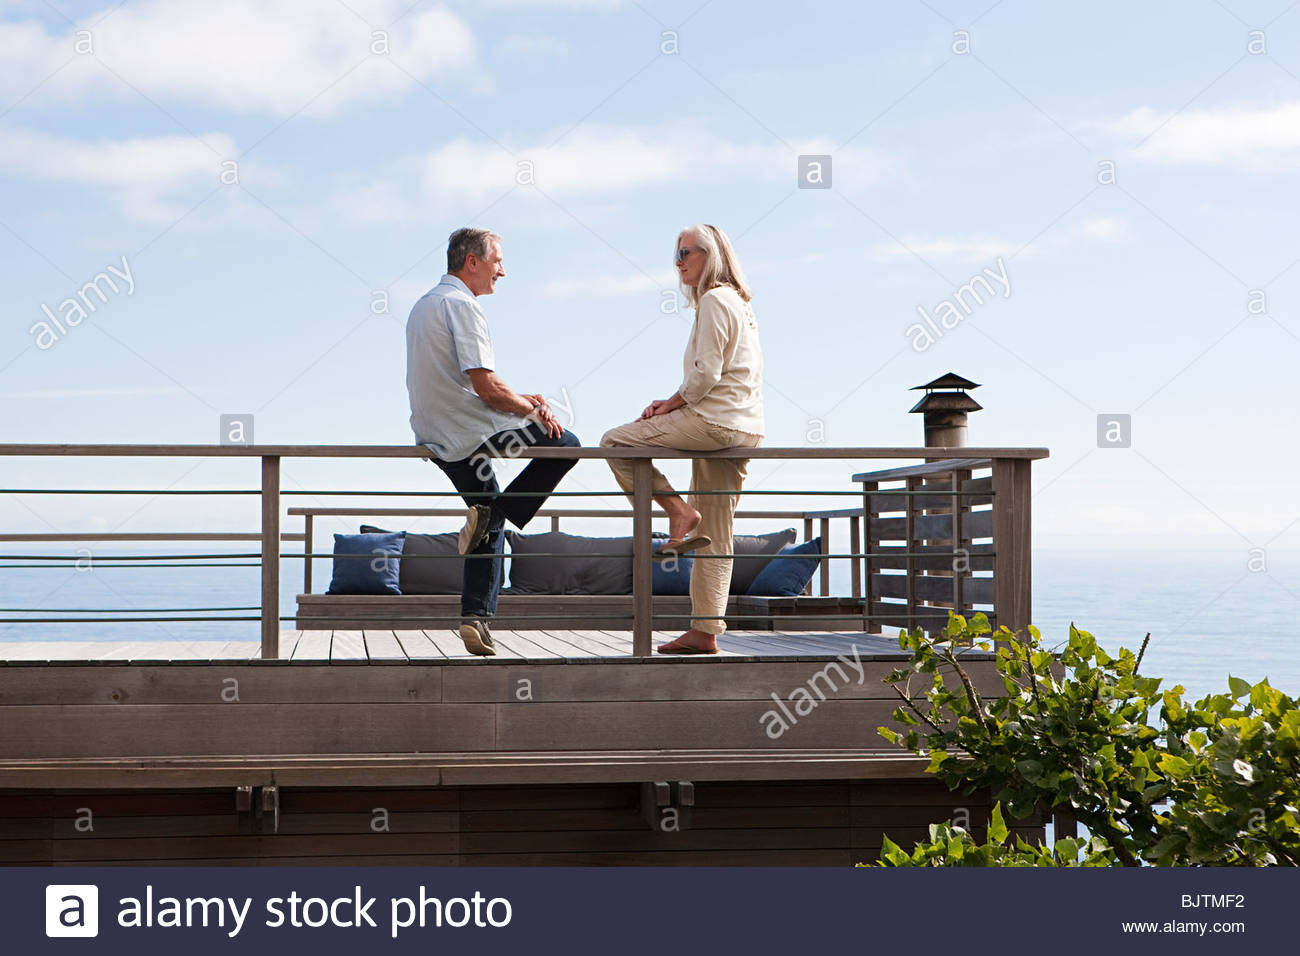 Couple on balcony by the sea - Stock Image